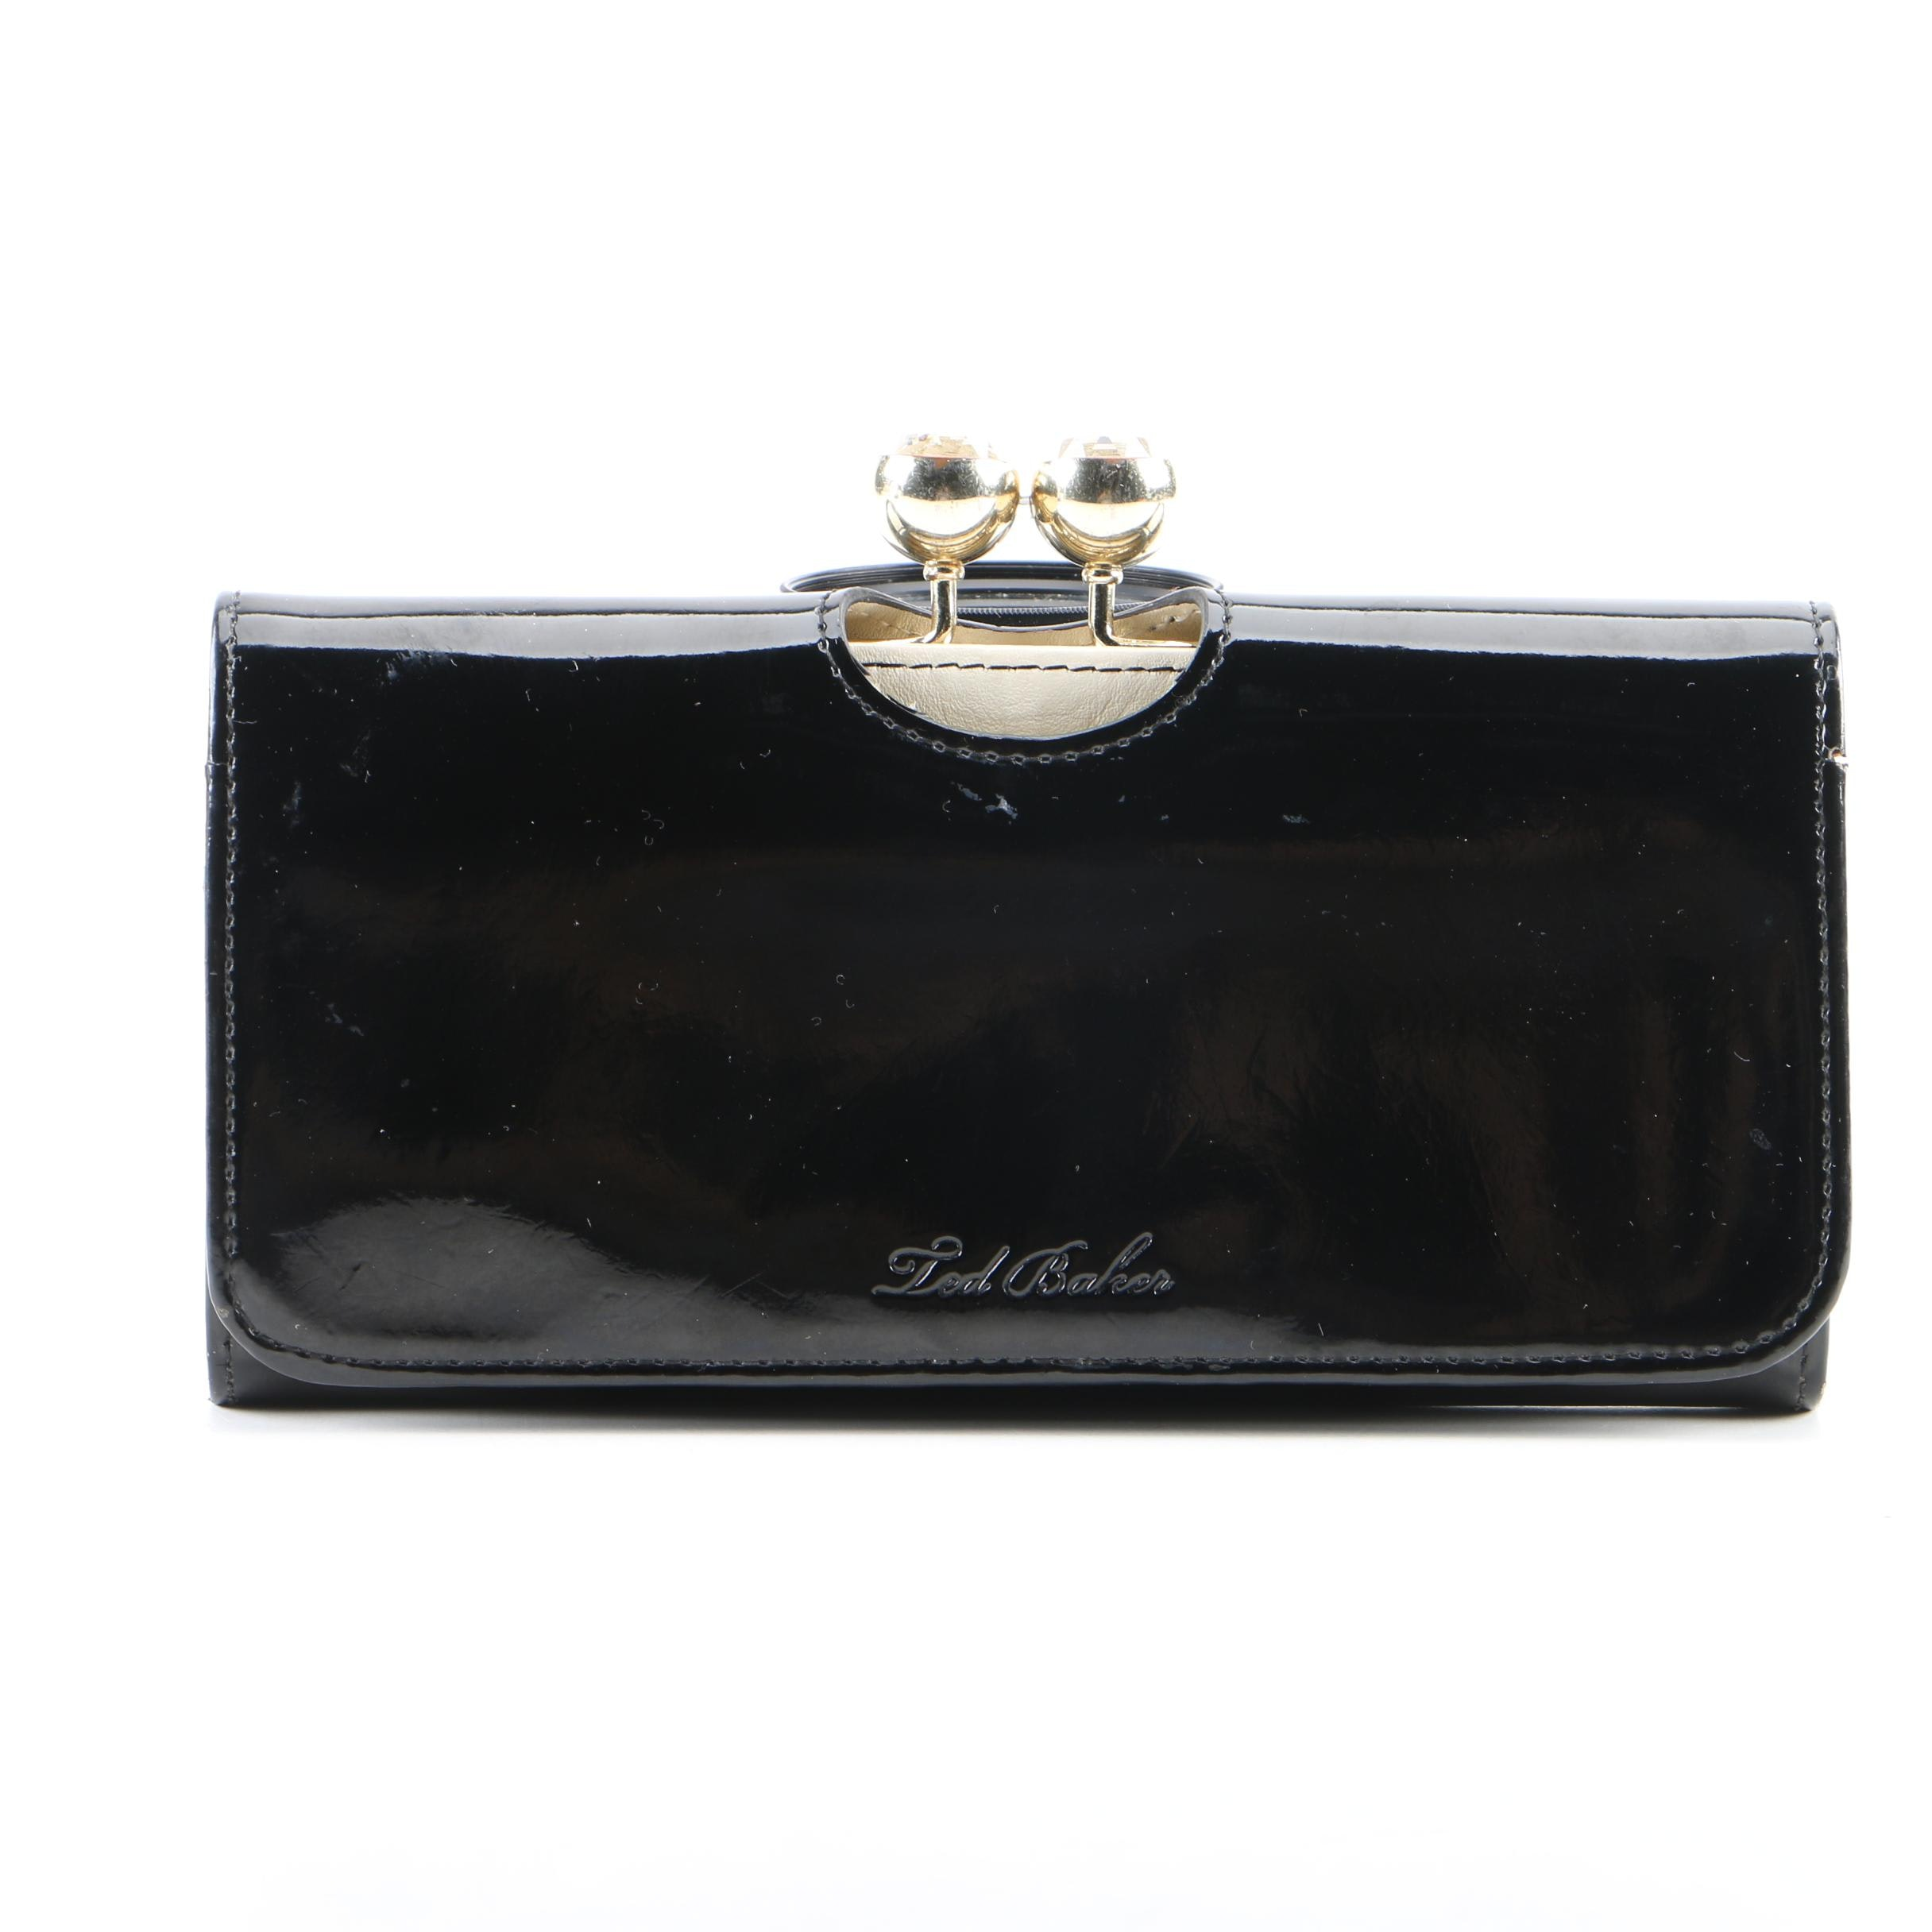 Ted Baker of London Black Patent Leather Wallet